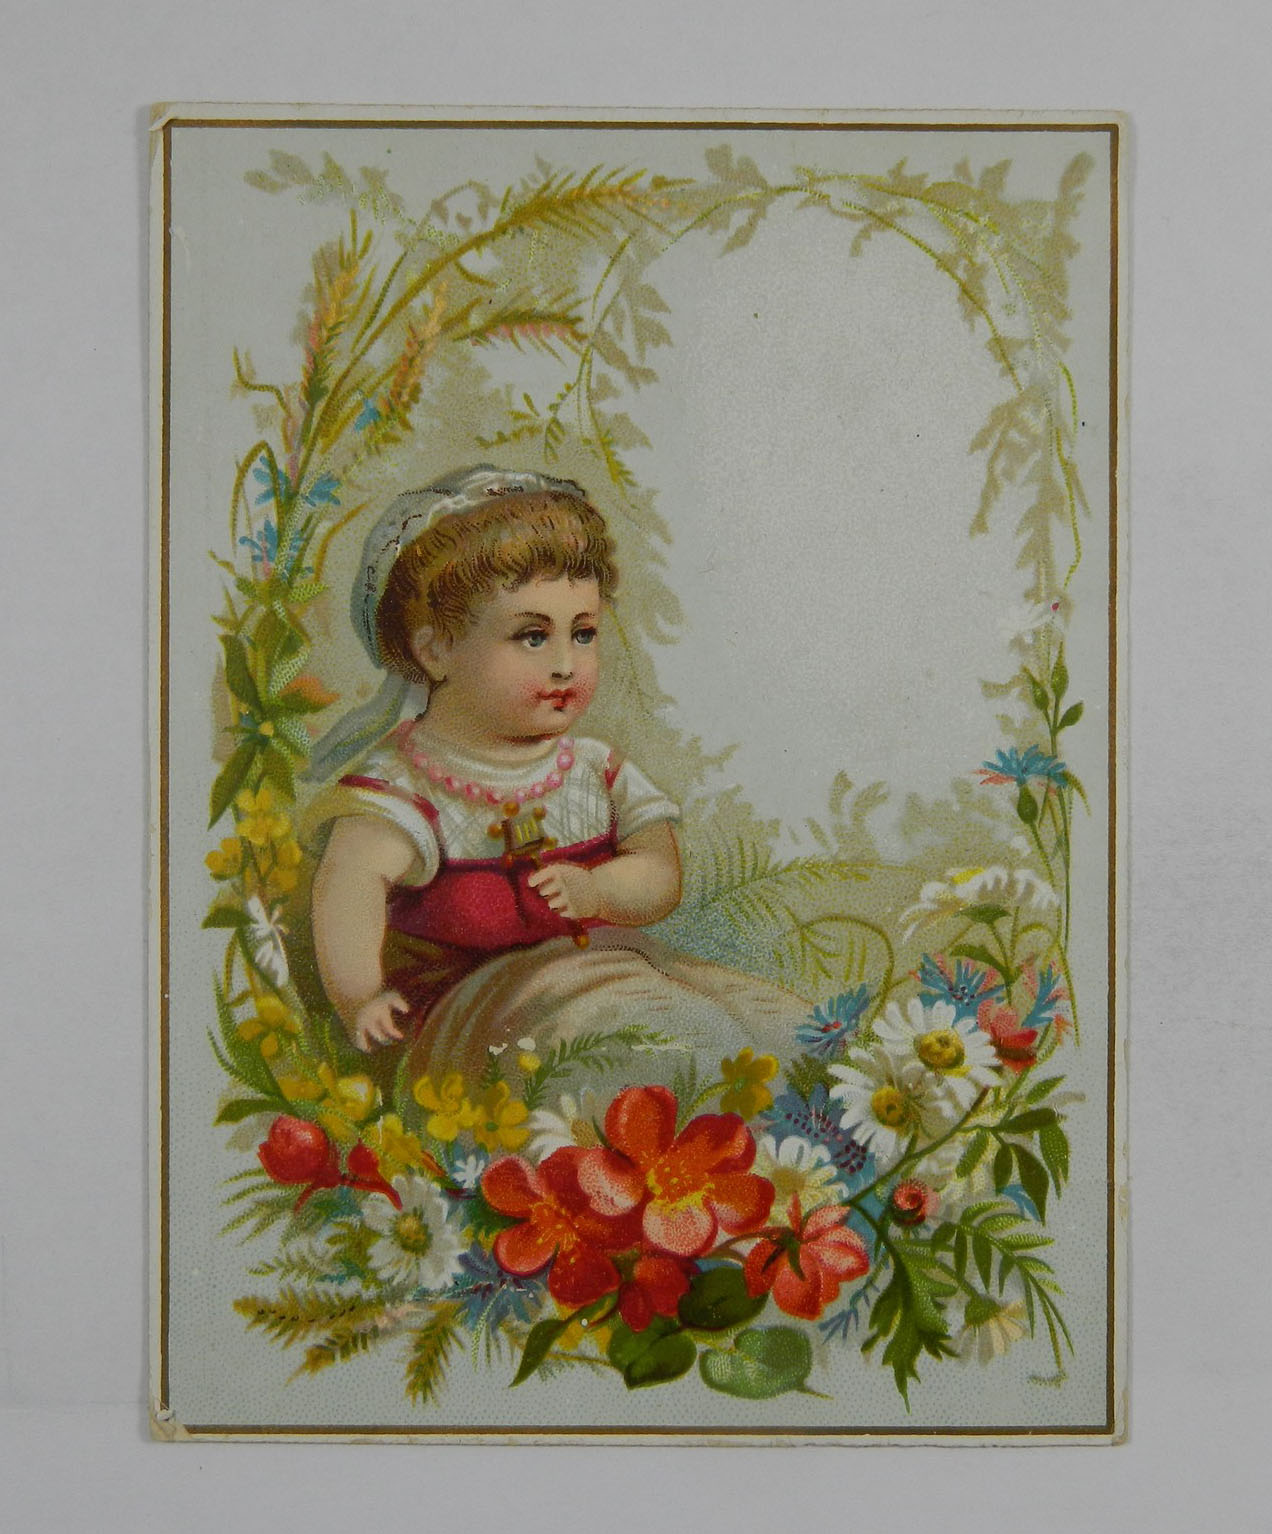 Girl Sitting a Field of Flowers Vintage Trade Card 217013 ...